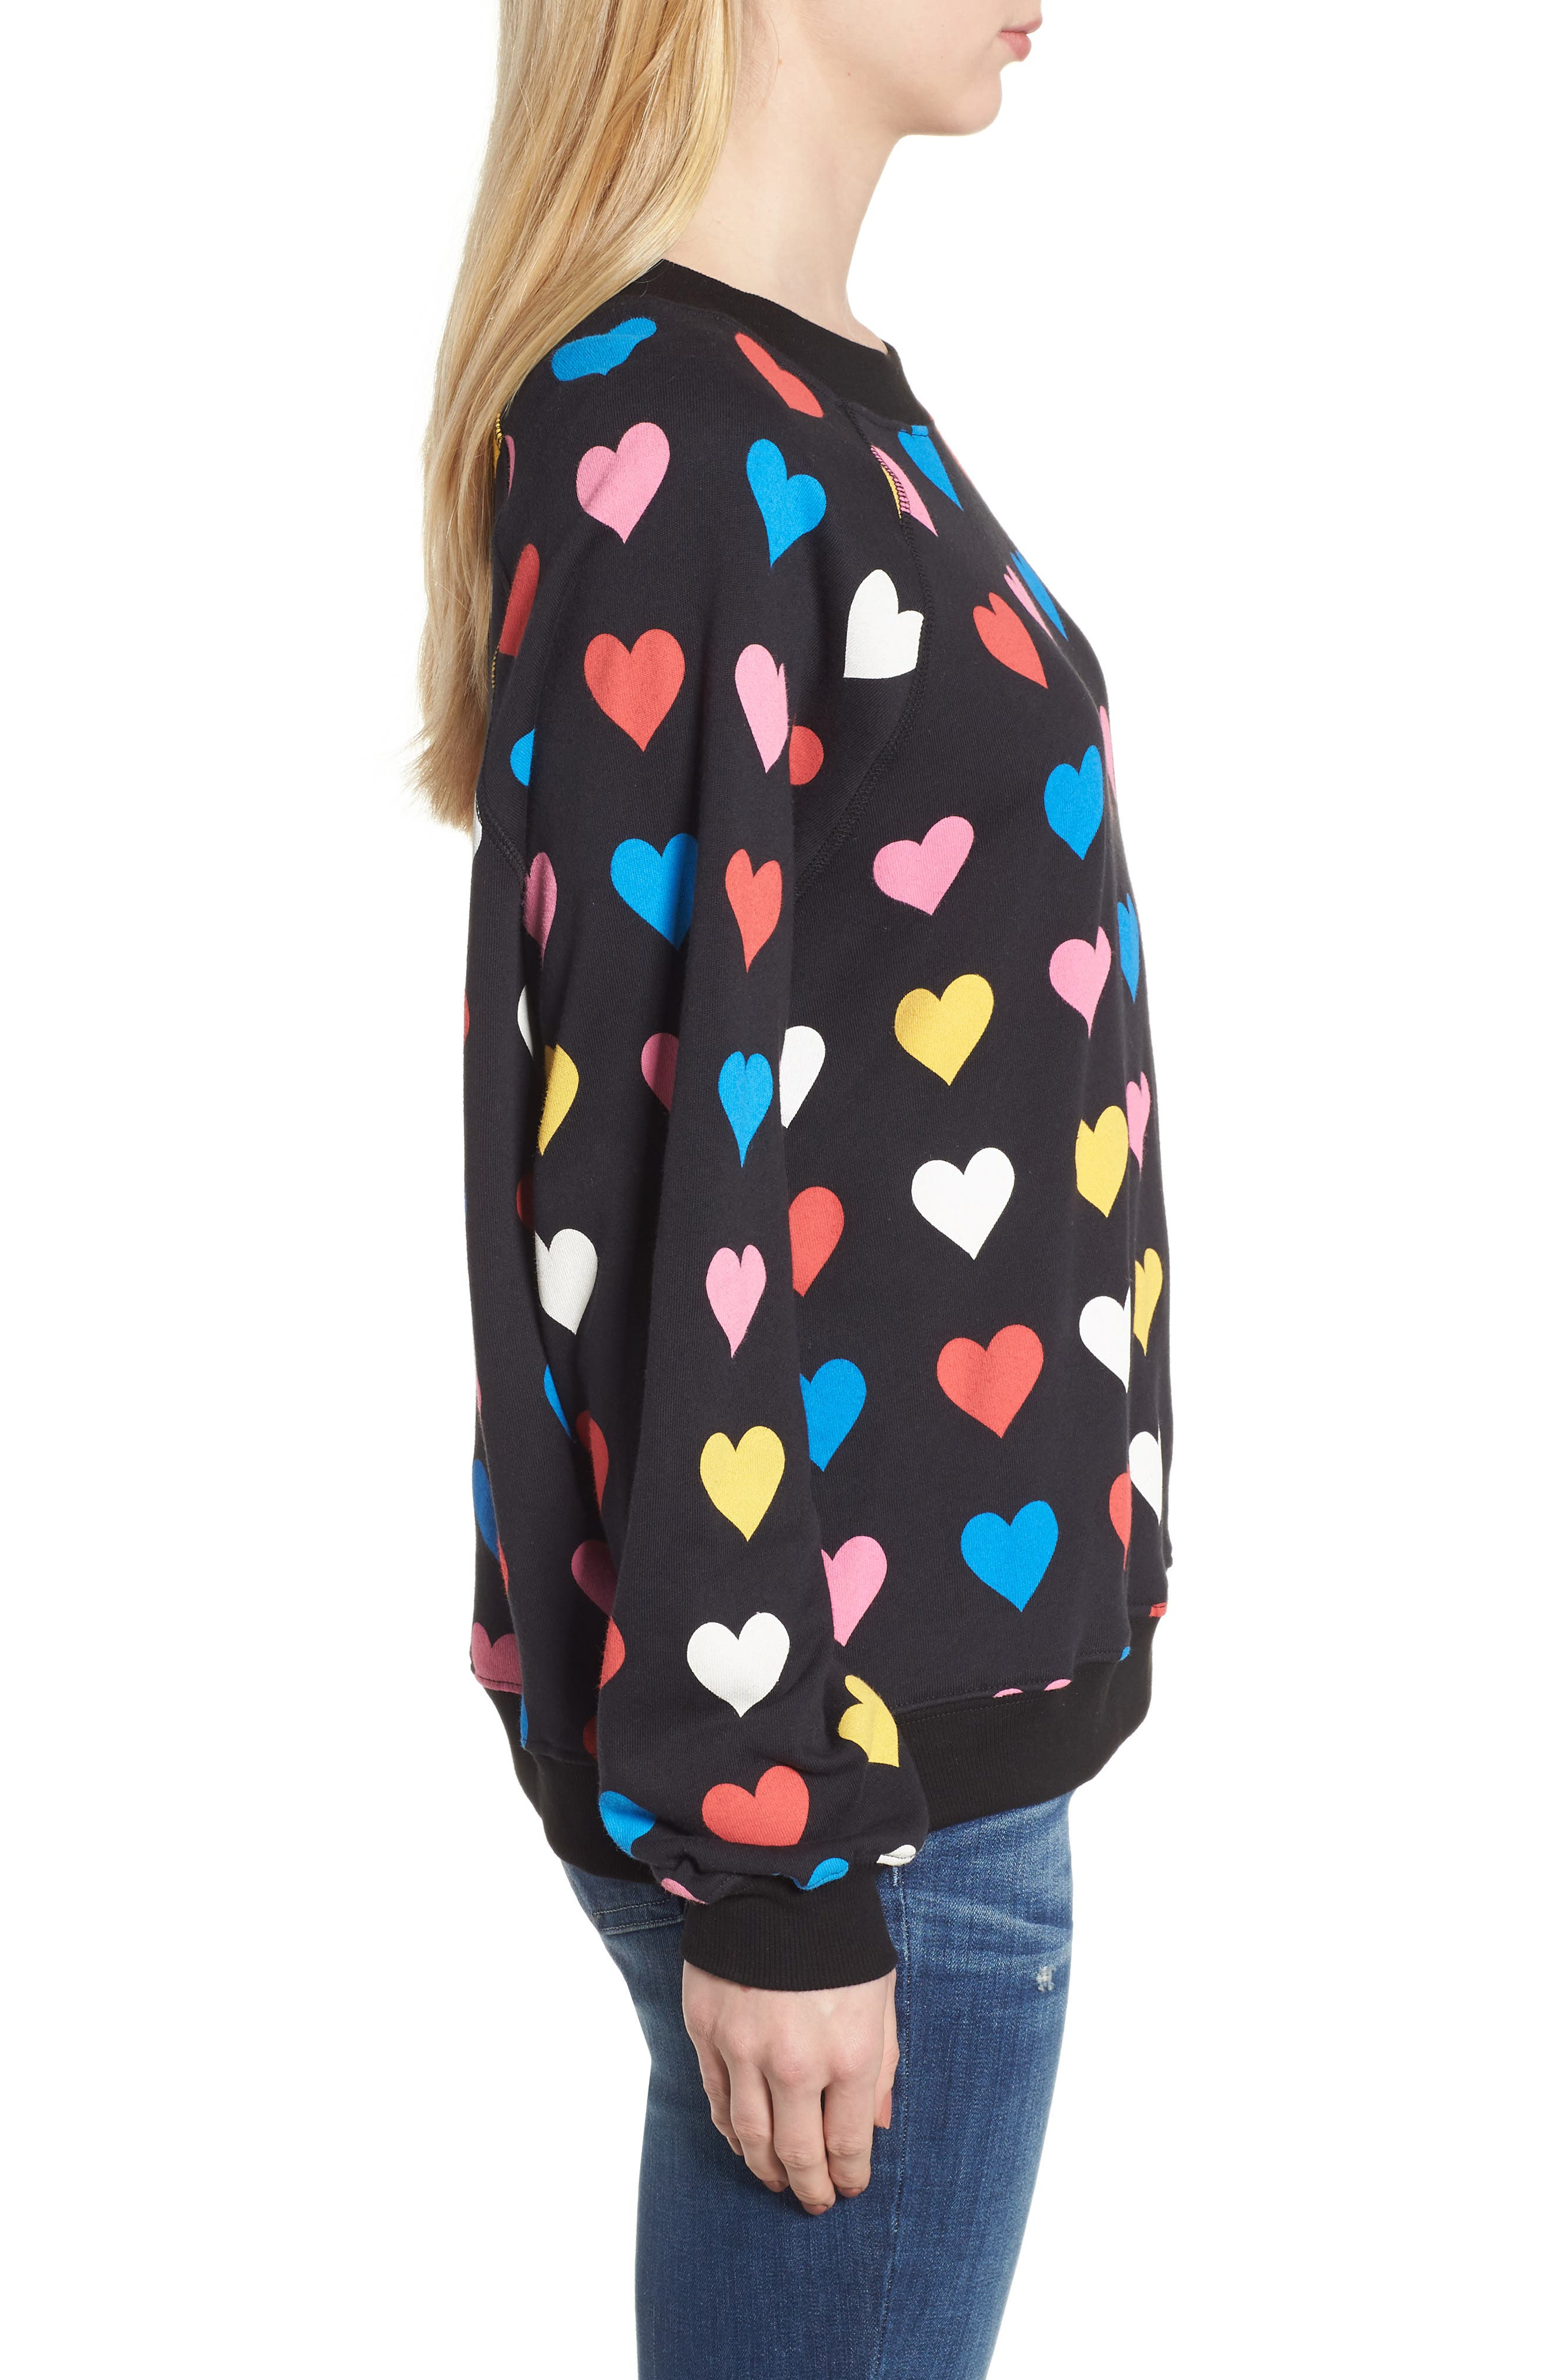 Have a Heart Sommers Sweatshirt,                             Alternate thumbnail 3, color,                             Black